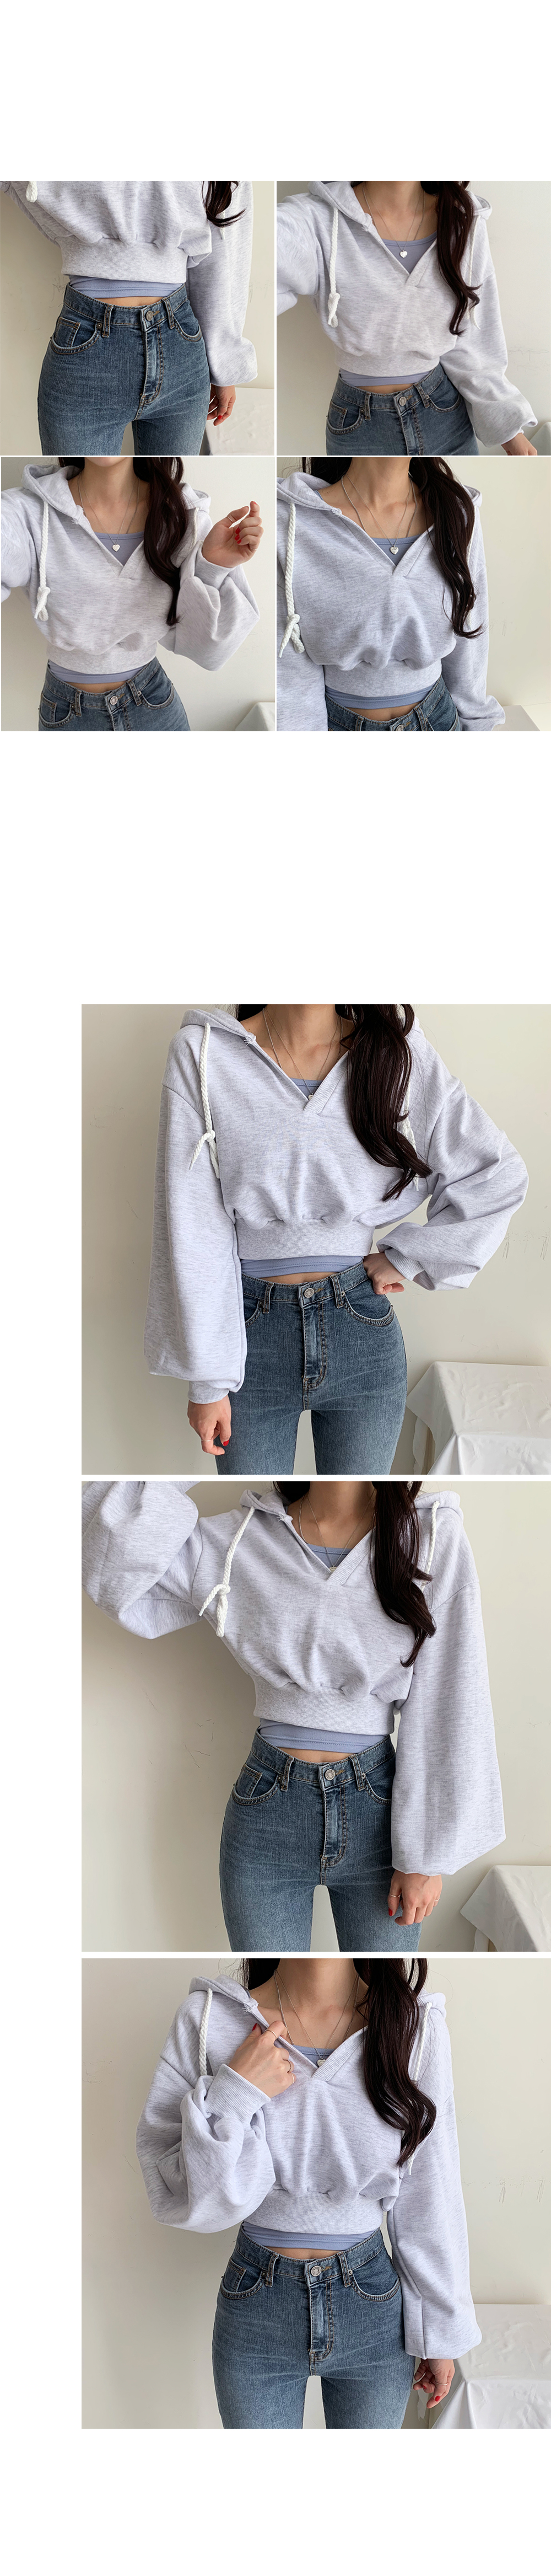 V hooded crop-to-man